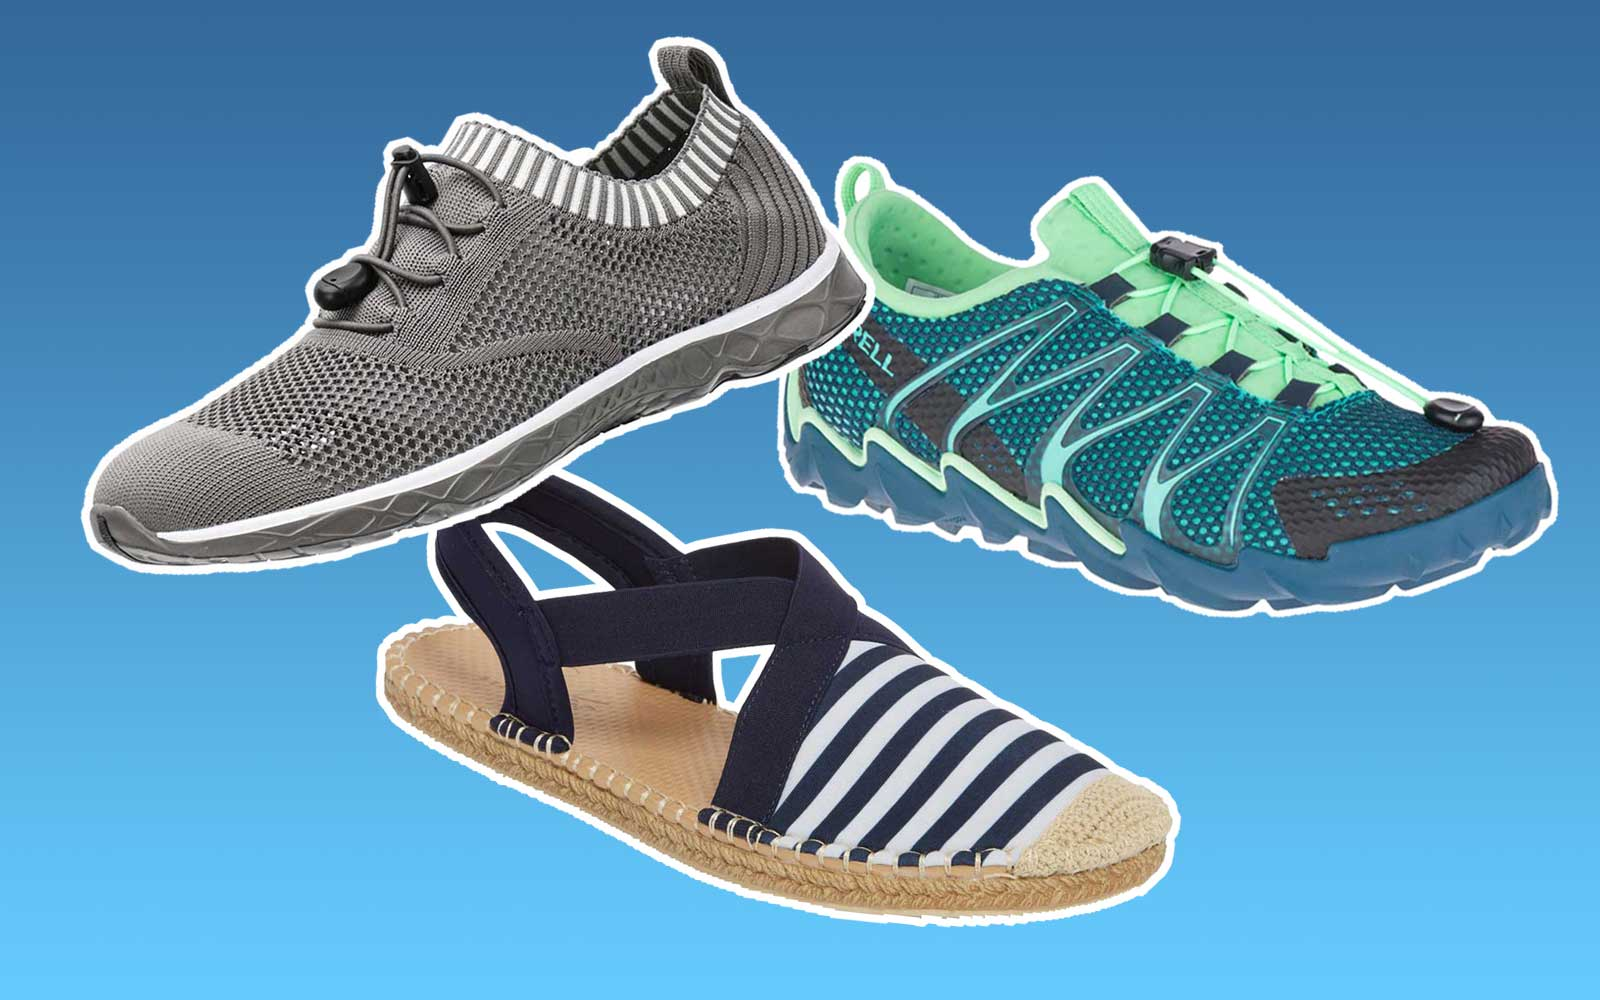 The Best Water Shoes for Women in 2019